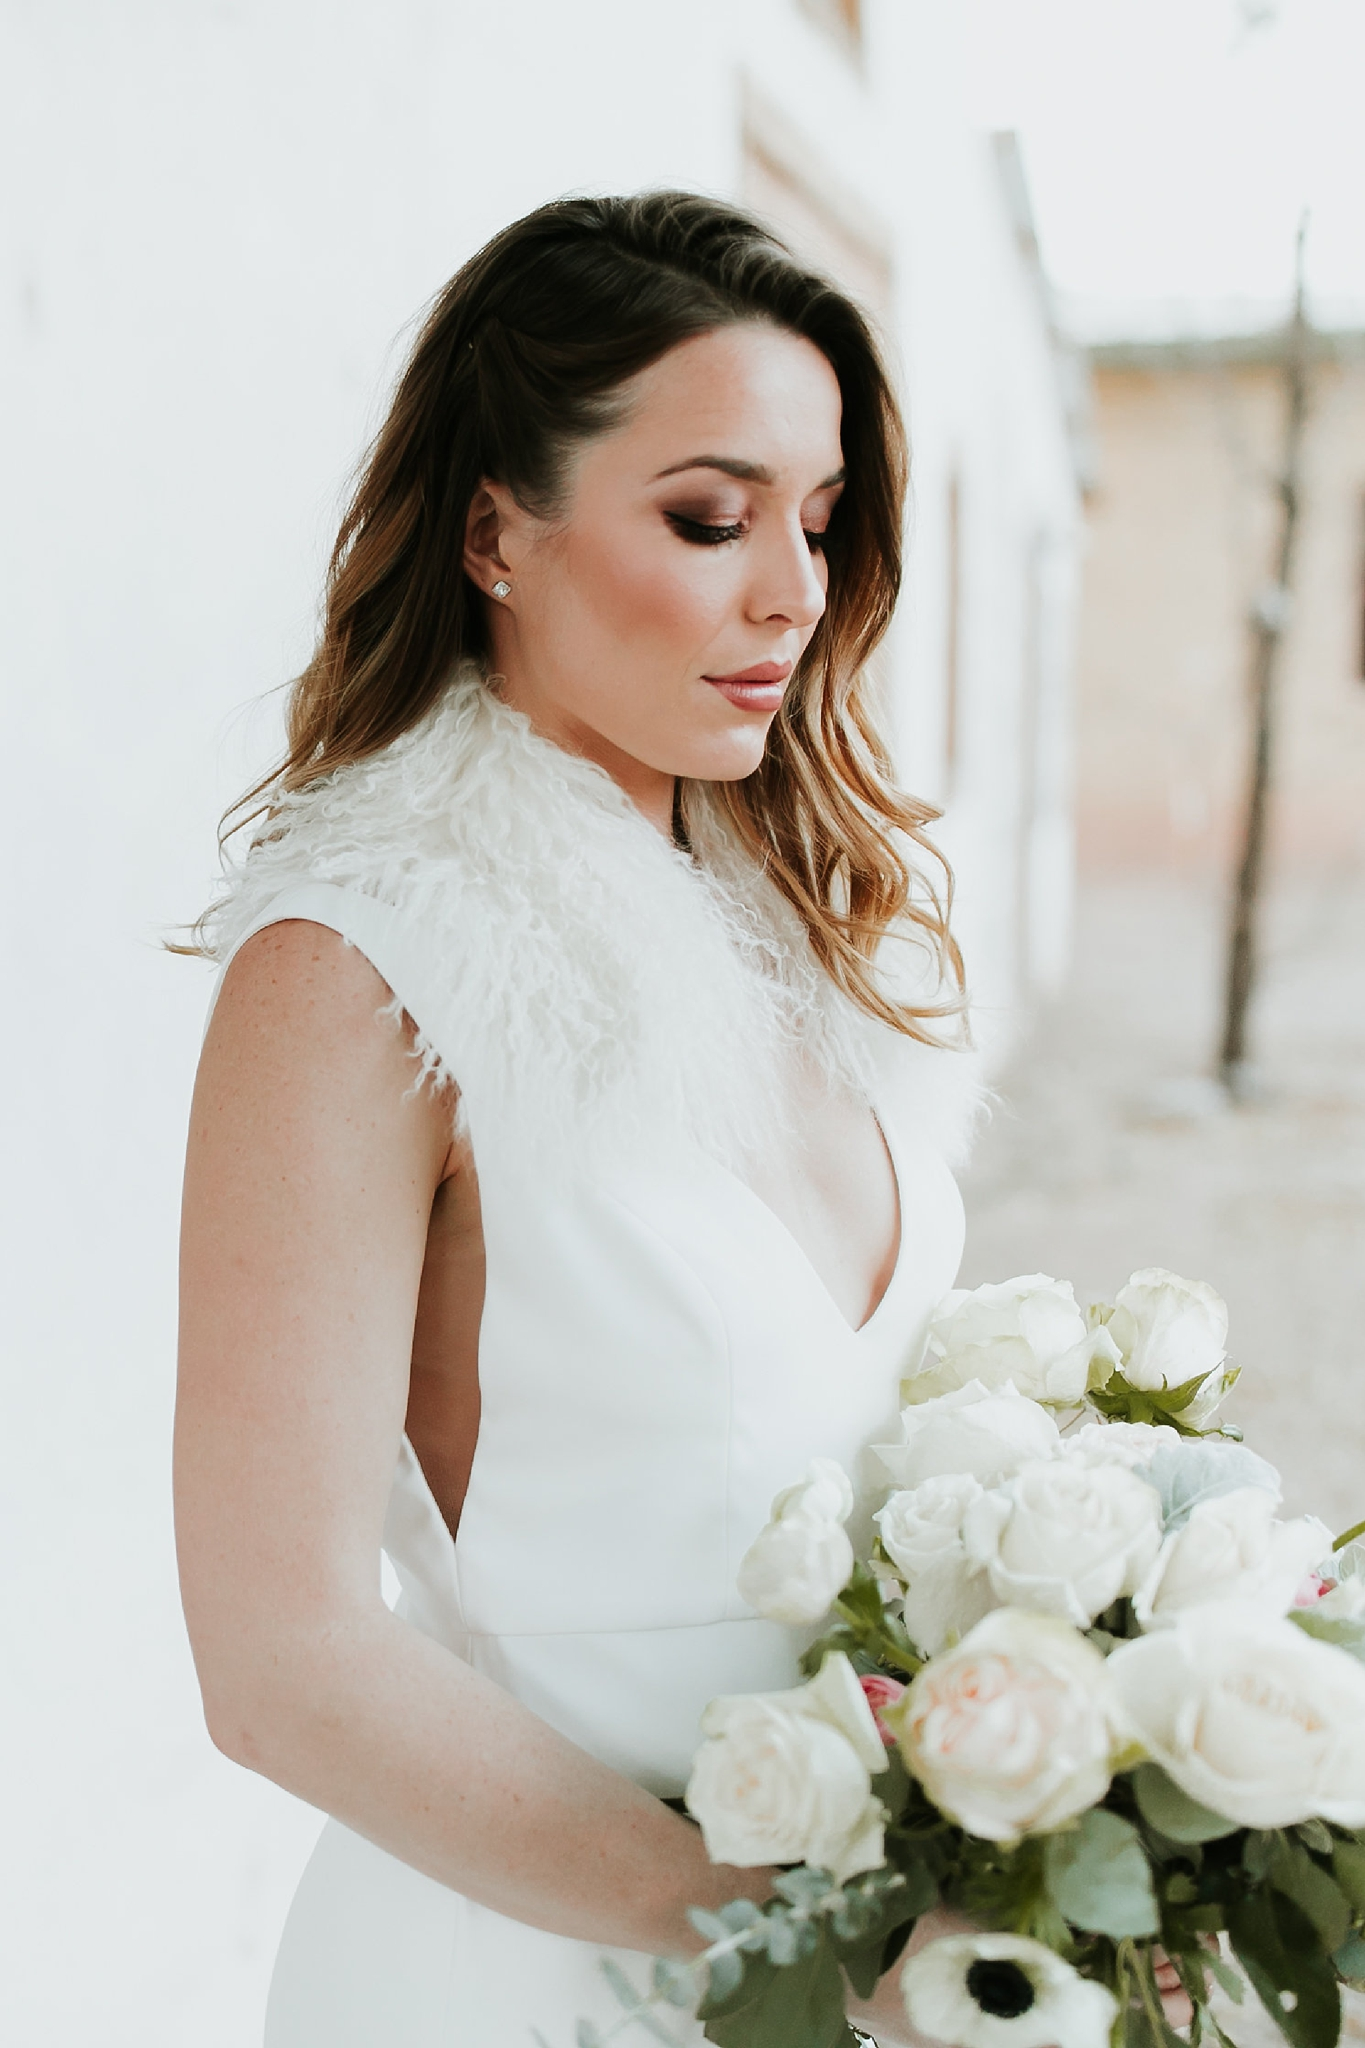 Alicia+lucia+photography+-+albuquerque+wedding+photographer+-+santa+fe+wedding+photography+-+new+mexico+wedding+photographer+-+bridal+shoot+-+styled+bridal+shoot+-+southwest+bride_0013.jpg